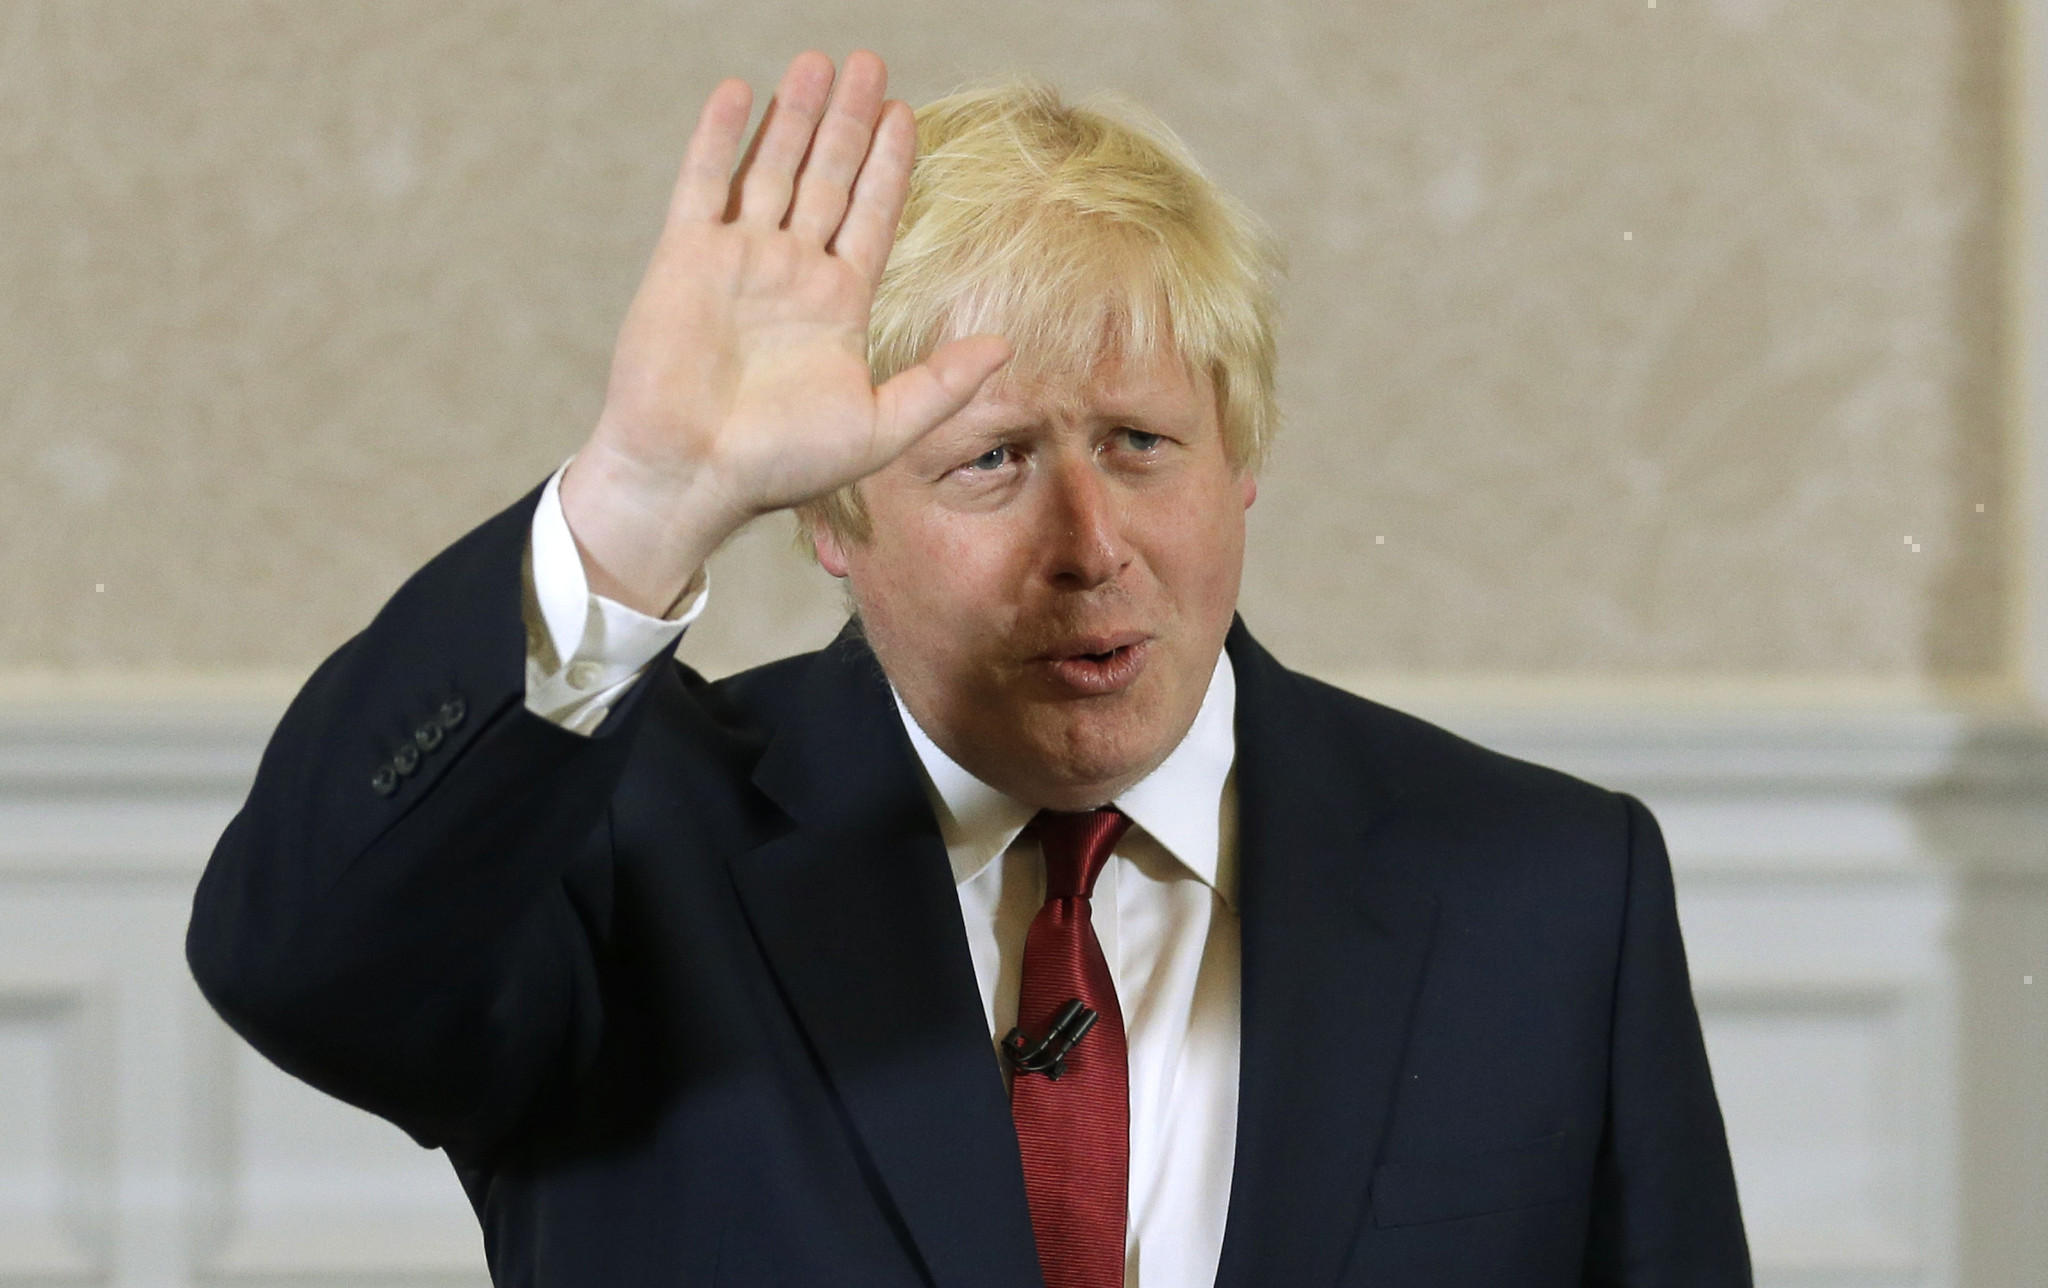 'Brexit' campaigner Boris Johnson withdraws from race to become Britain's prime minister